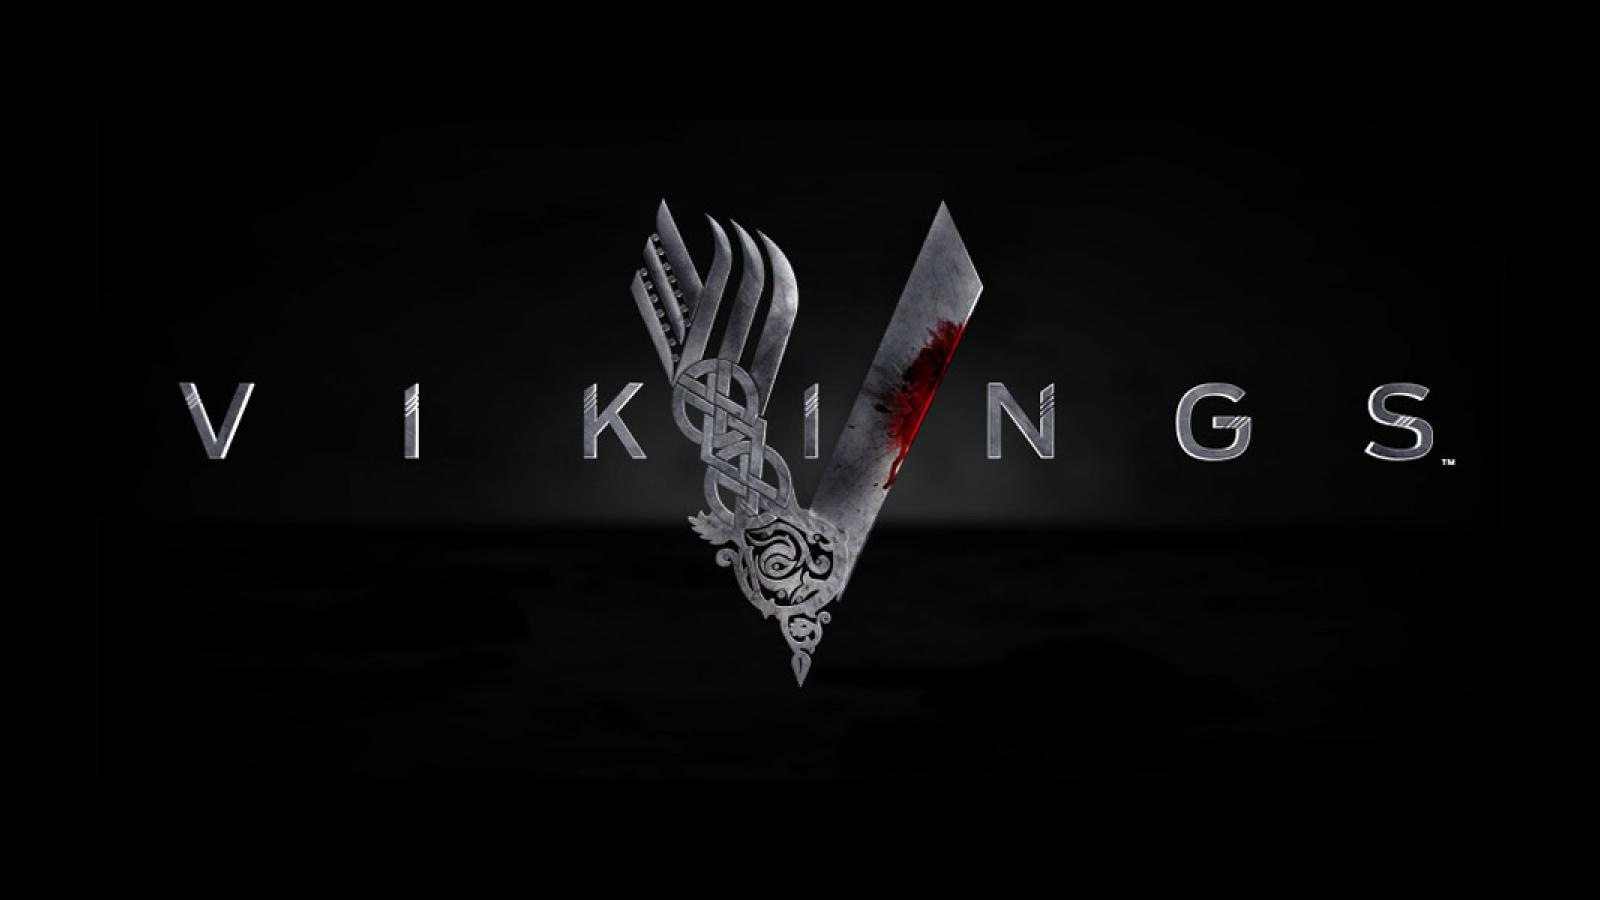 Vikings - Visual Identity